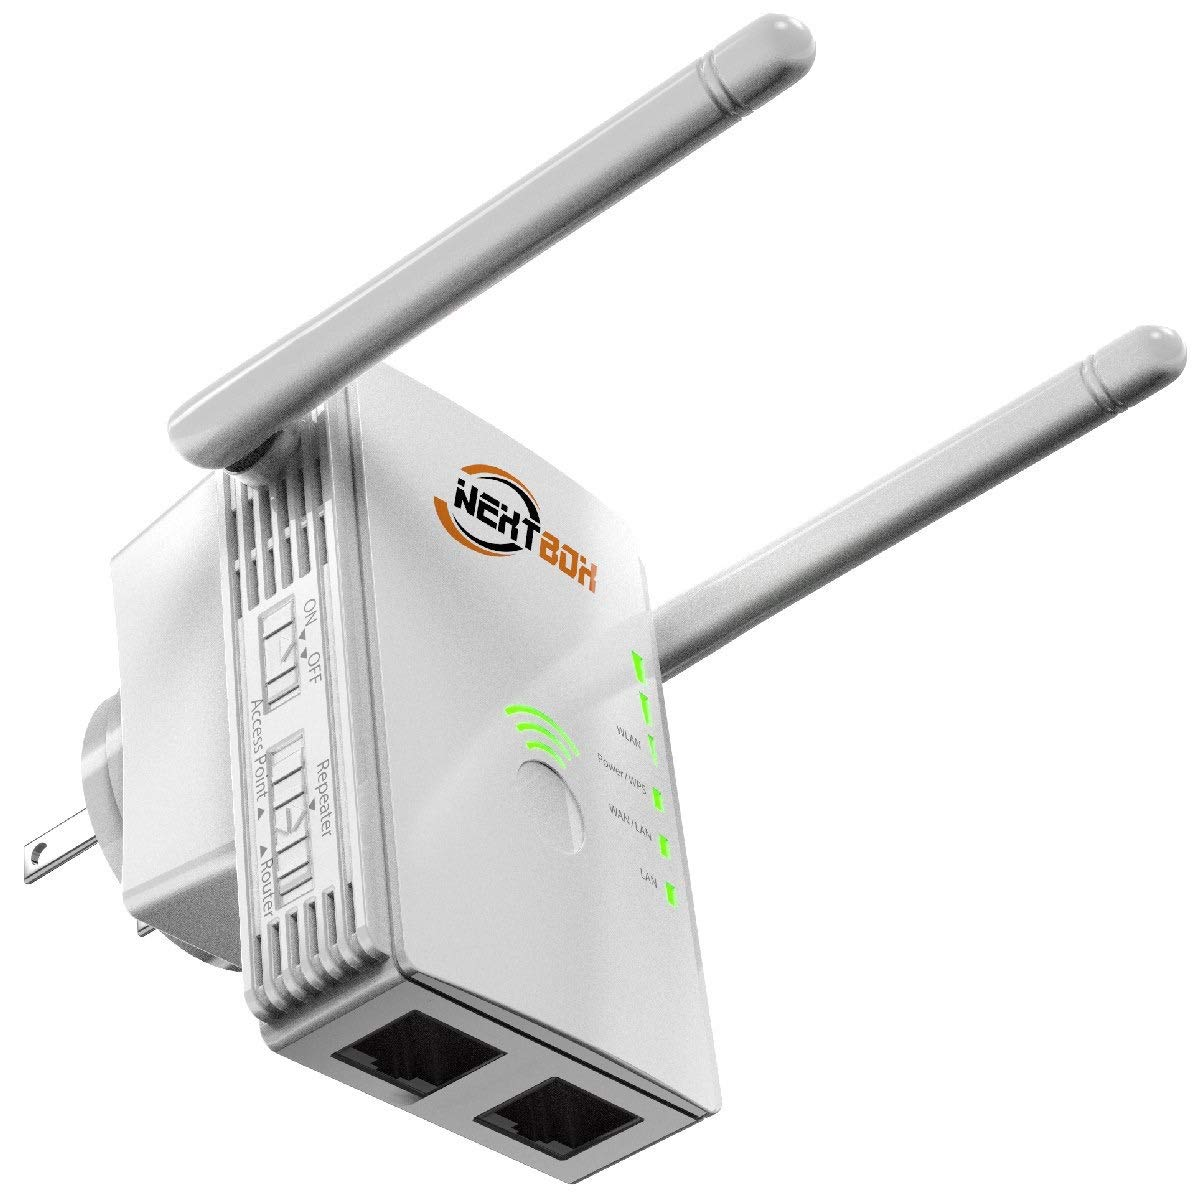 Best Smart Home Devices 2020.Upgraded 2020 Wifi Extender 300 Mbps With Wps Internet Signal Booster Wireless Repeater 2 4ghz Band To 300 Mbps Range Network Compatible With